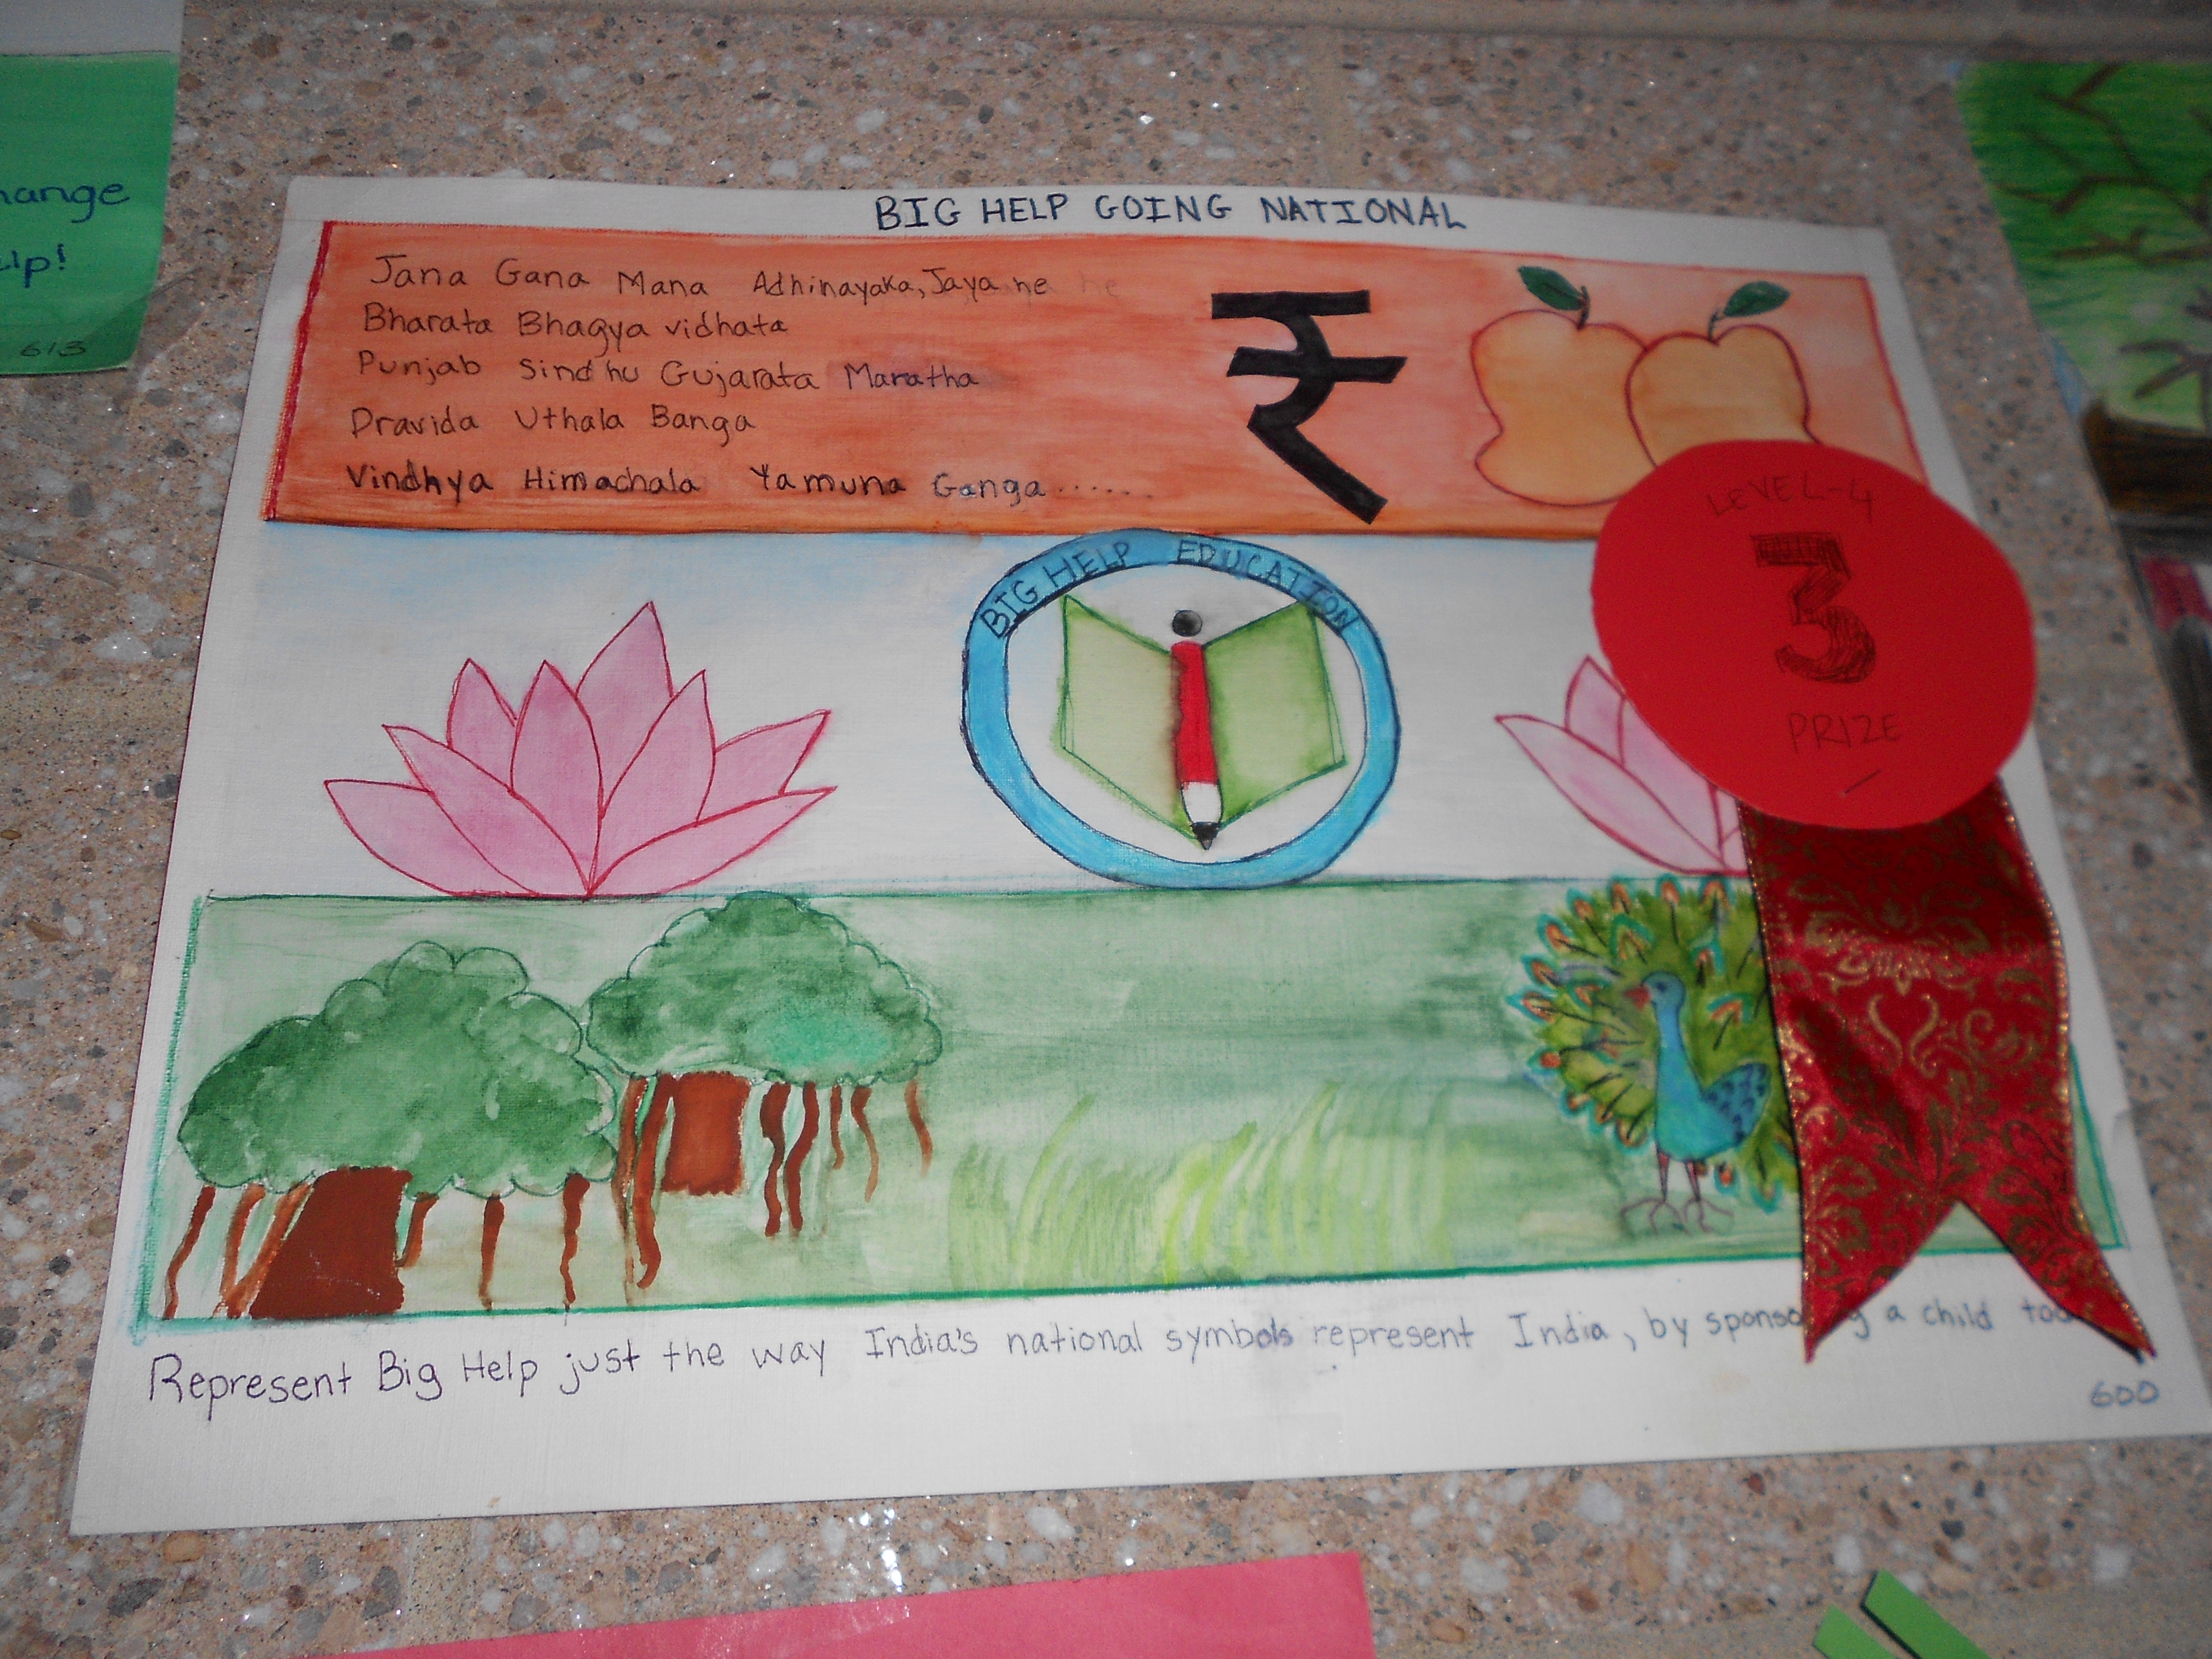 Bighelp pongal and republic day art competitions geetarts represent buycottarizona Gallery